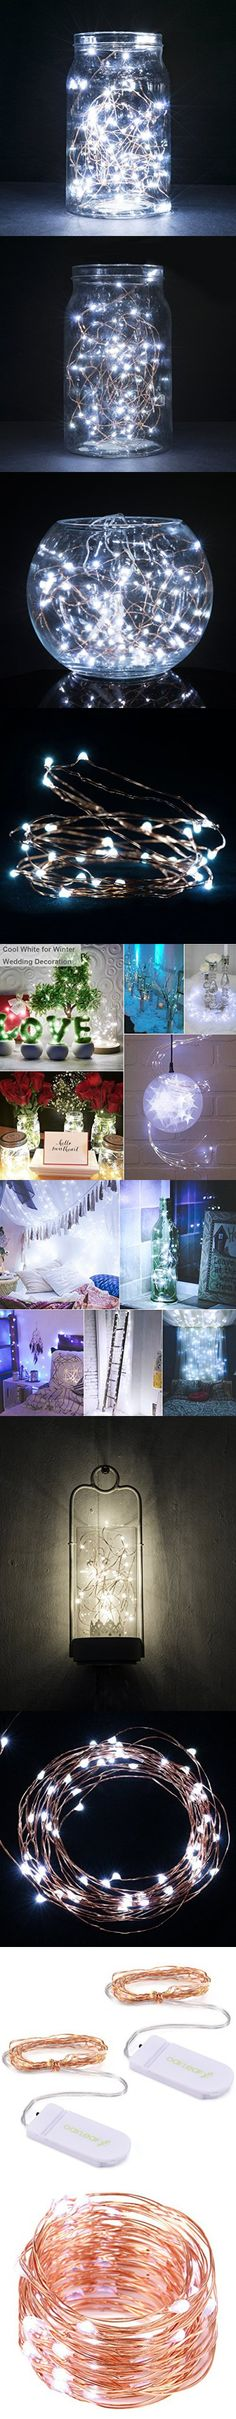 Battery operated white led rope light battery operated led rope string lightsoak leaf 2 set of micro 30 leds super bright cool white led mozeypictures Images